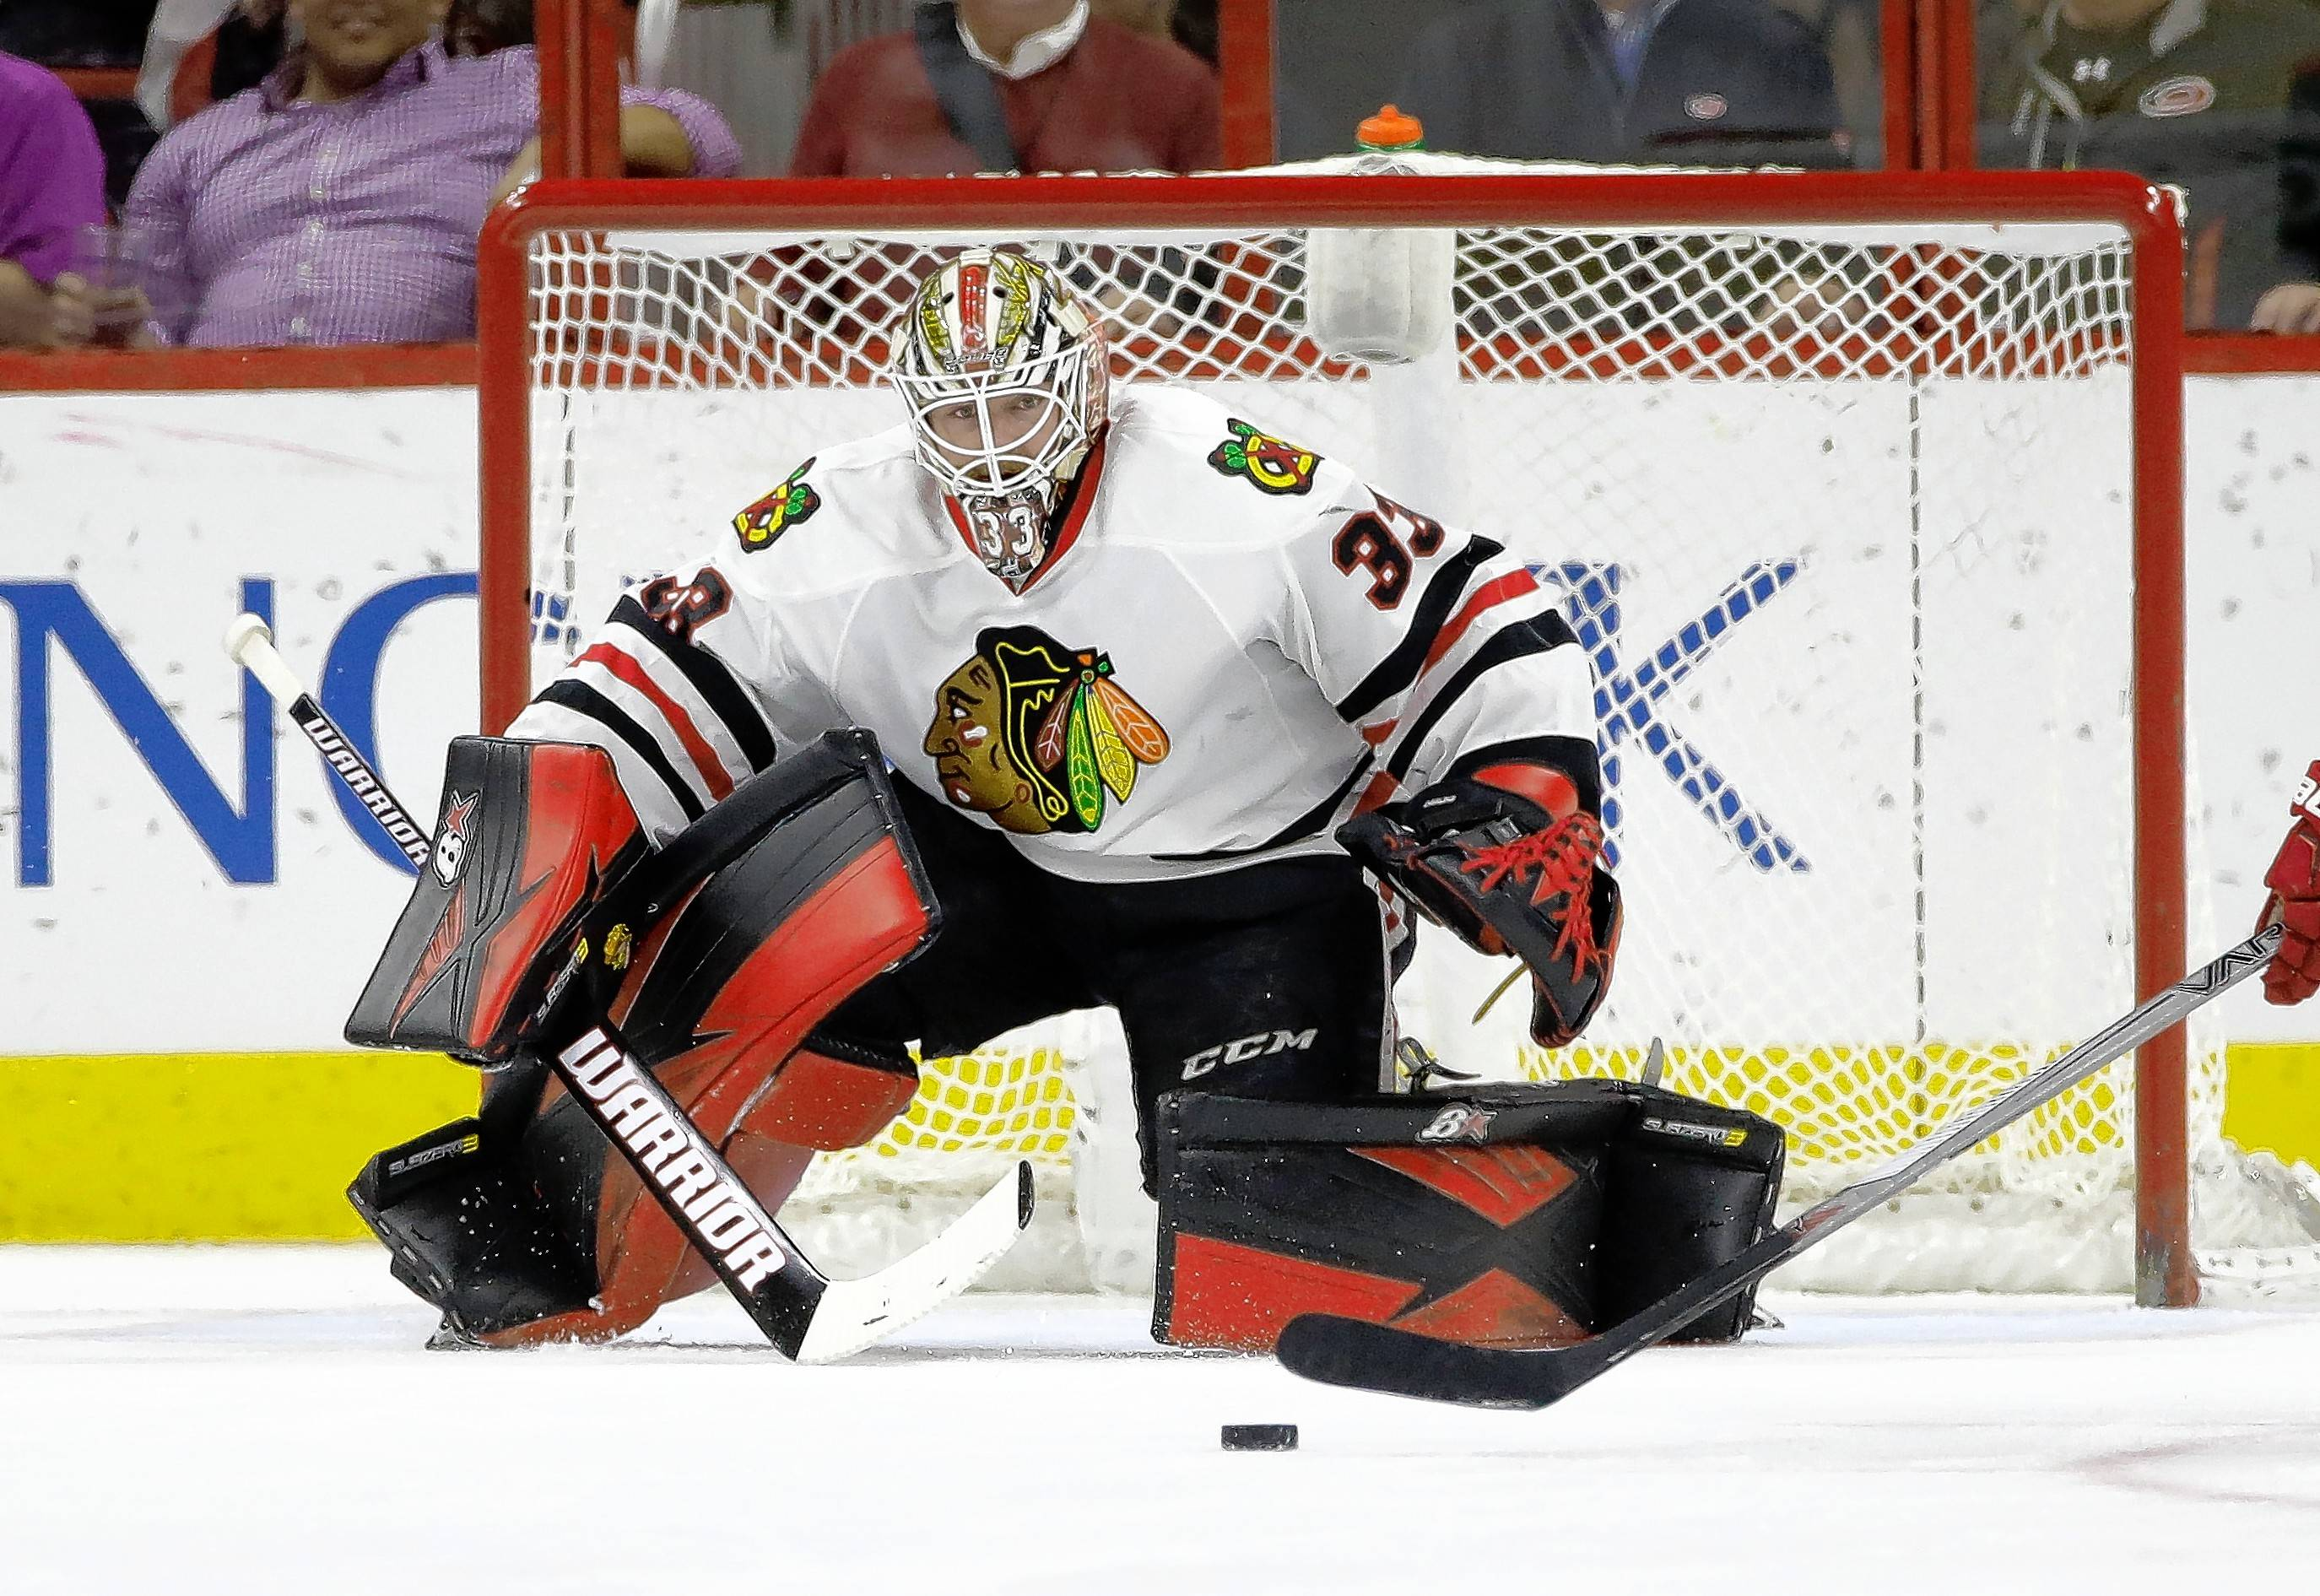 Chicago Blackhawks goalie Scott Darling (33) watches the puck during the second period of an NHL hockey game in Raleigh, N.C., Tuesday, Jan. 26, 2016. (AP Photo/Gerry Broome)